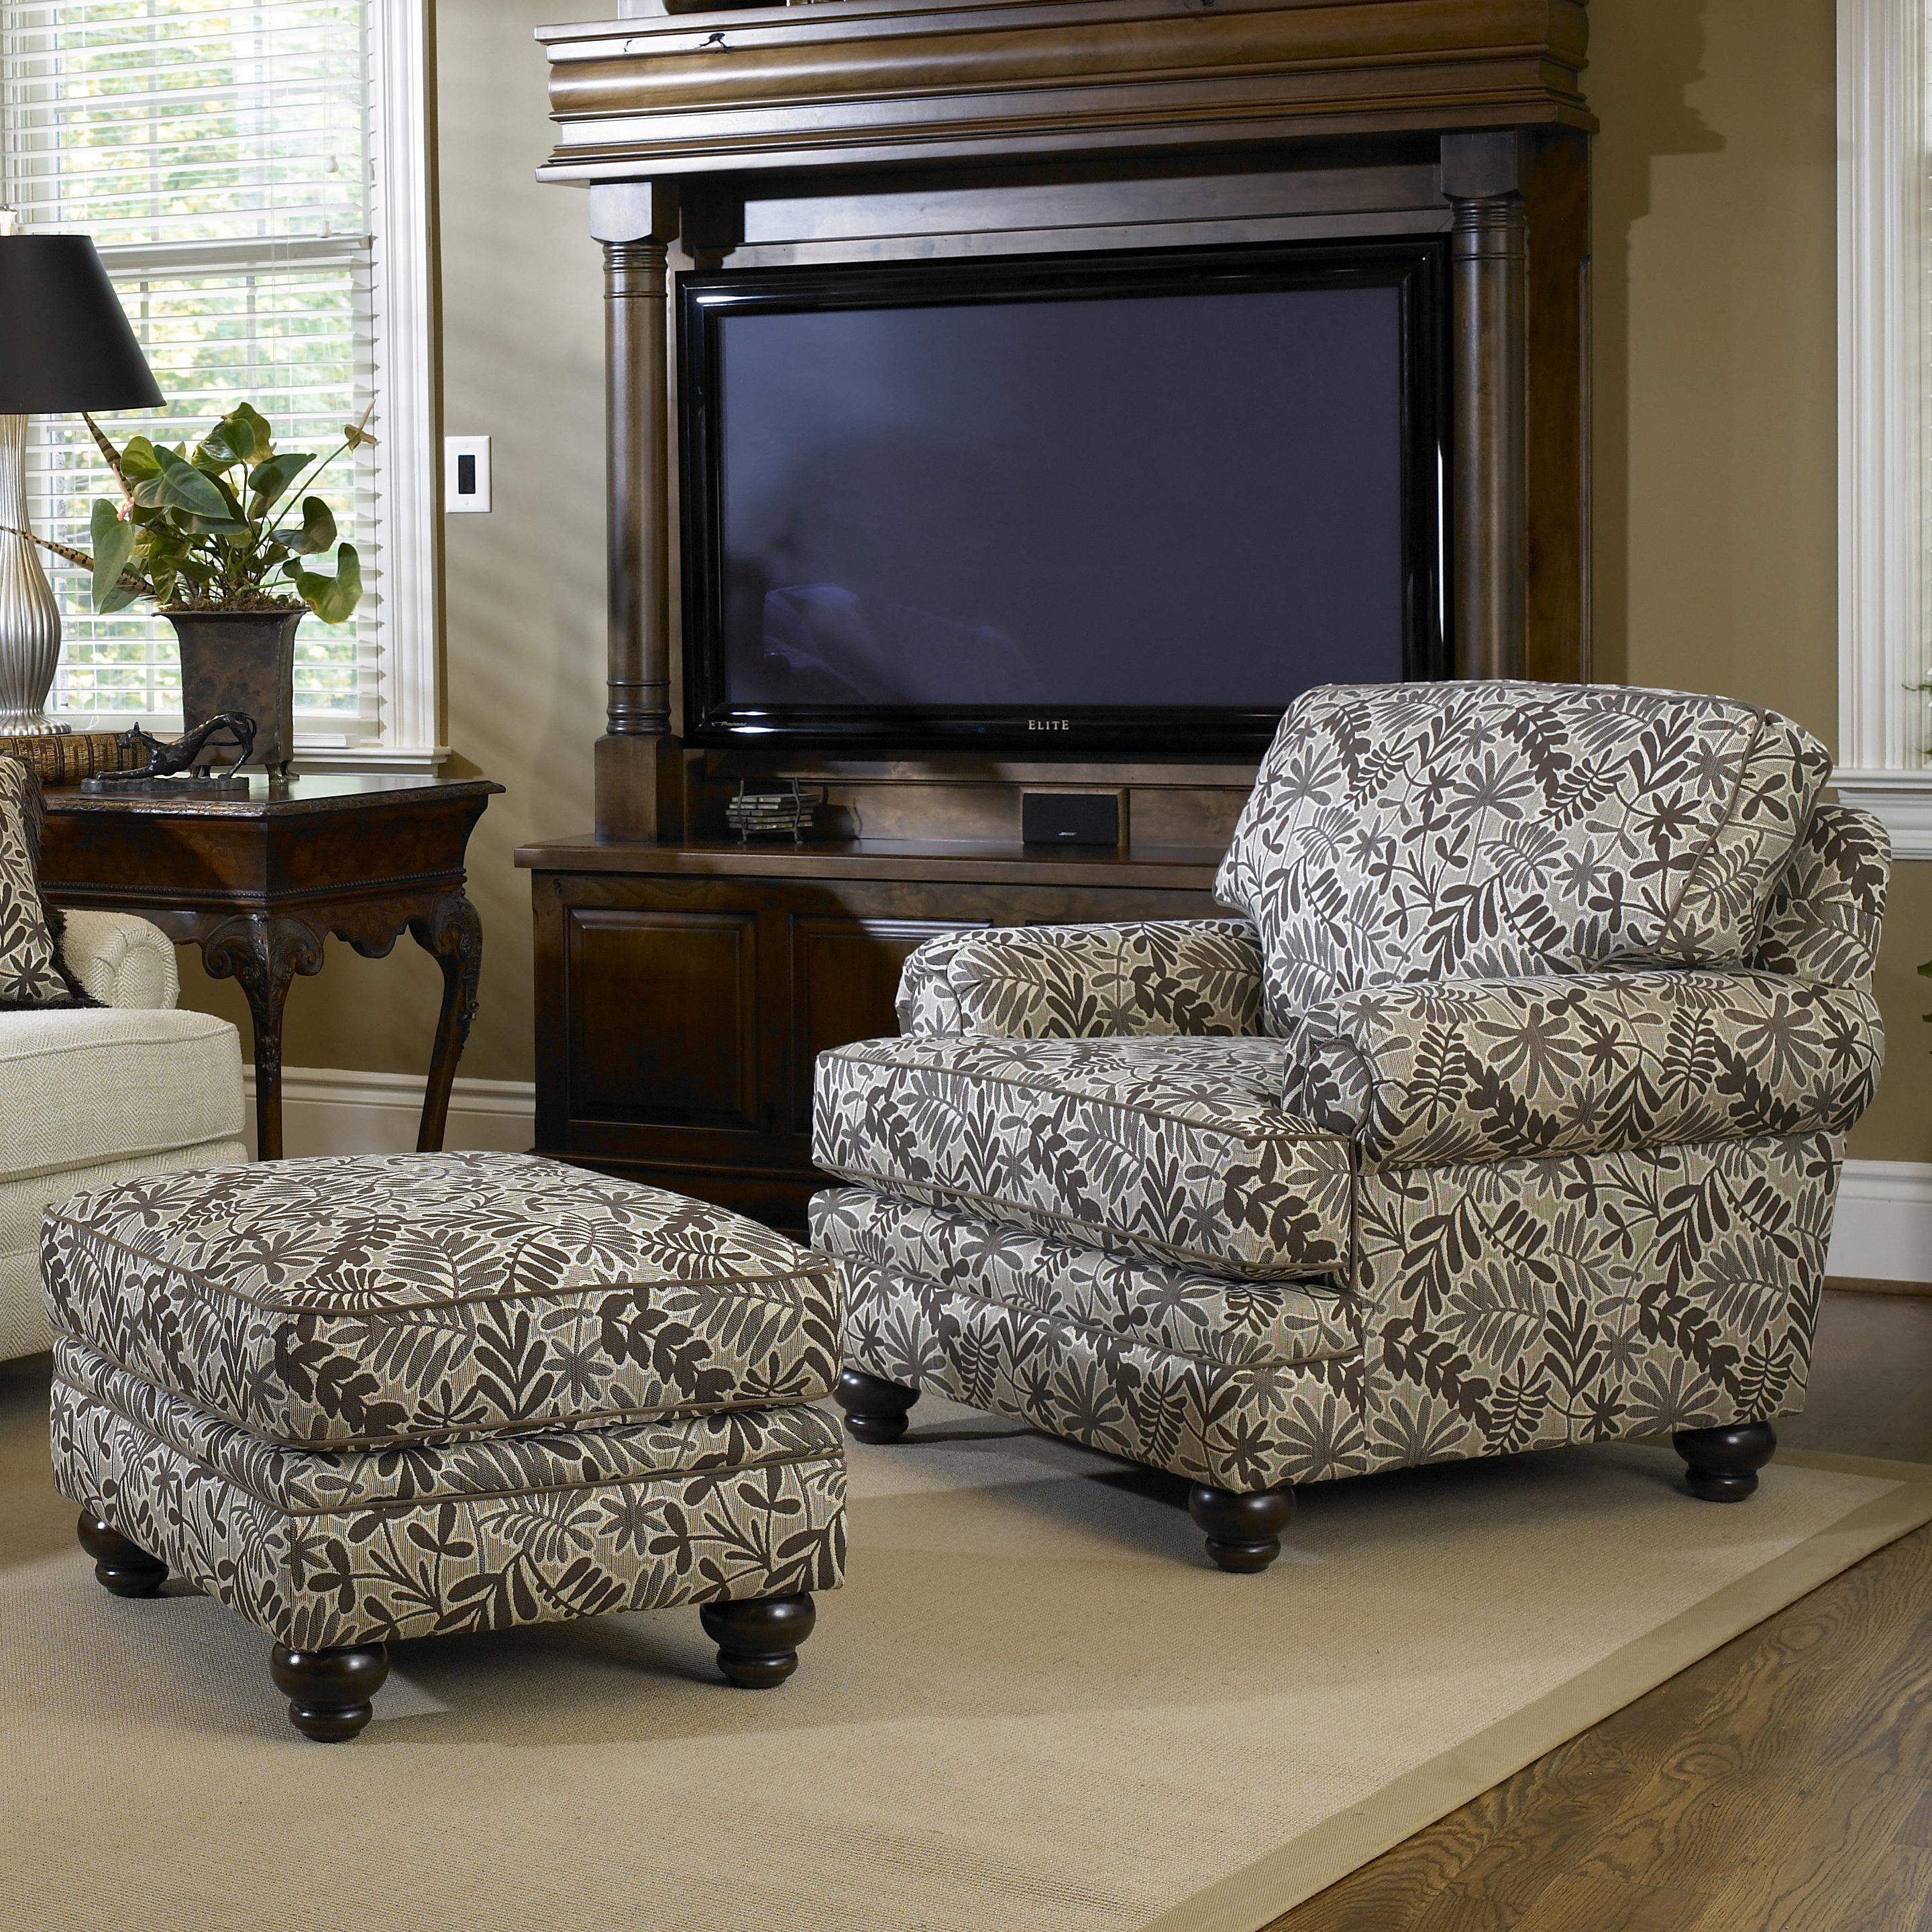 Smith Brothers Build Your Own 5000 Series Upholstered